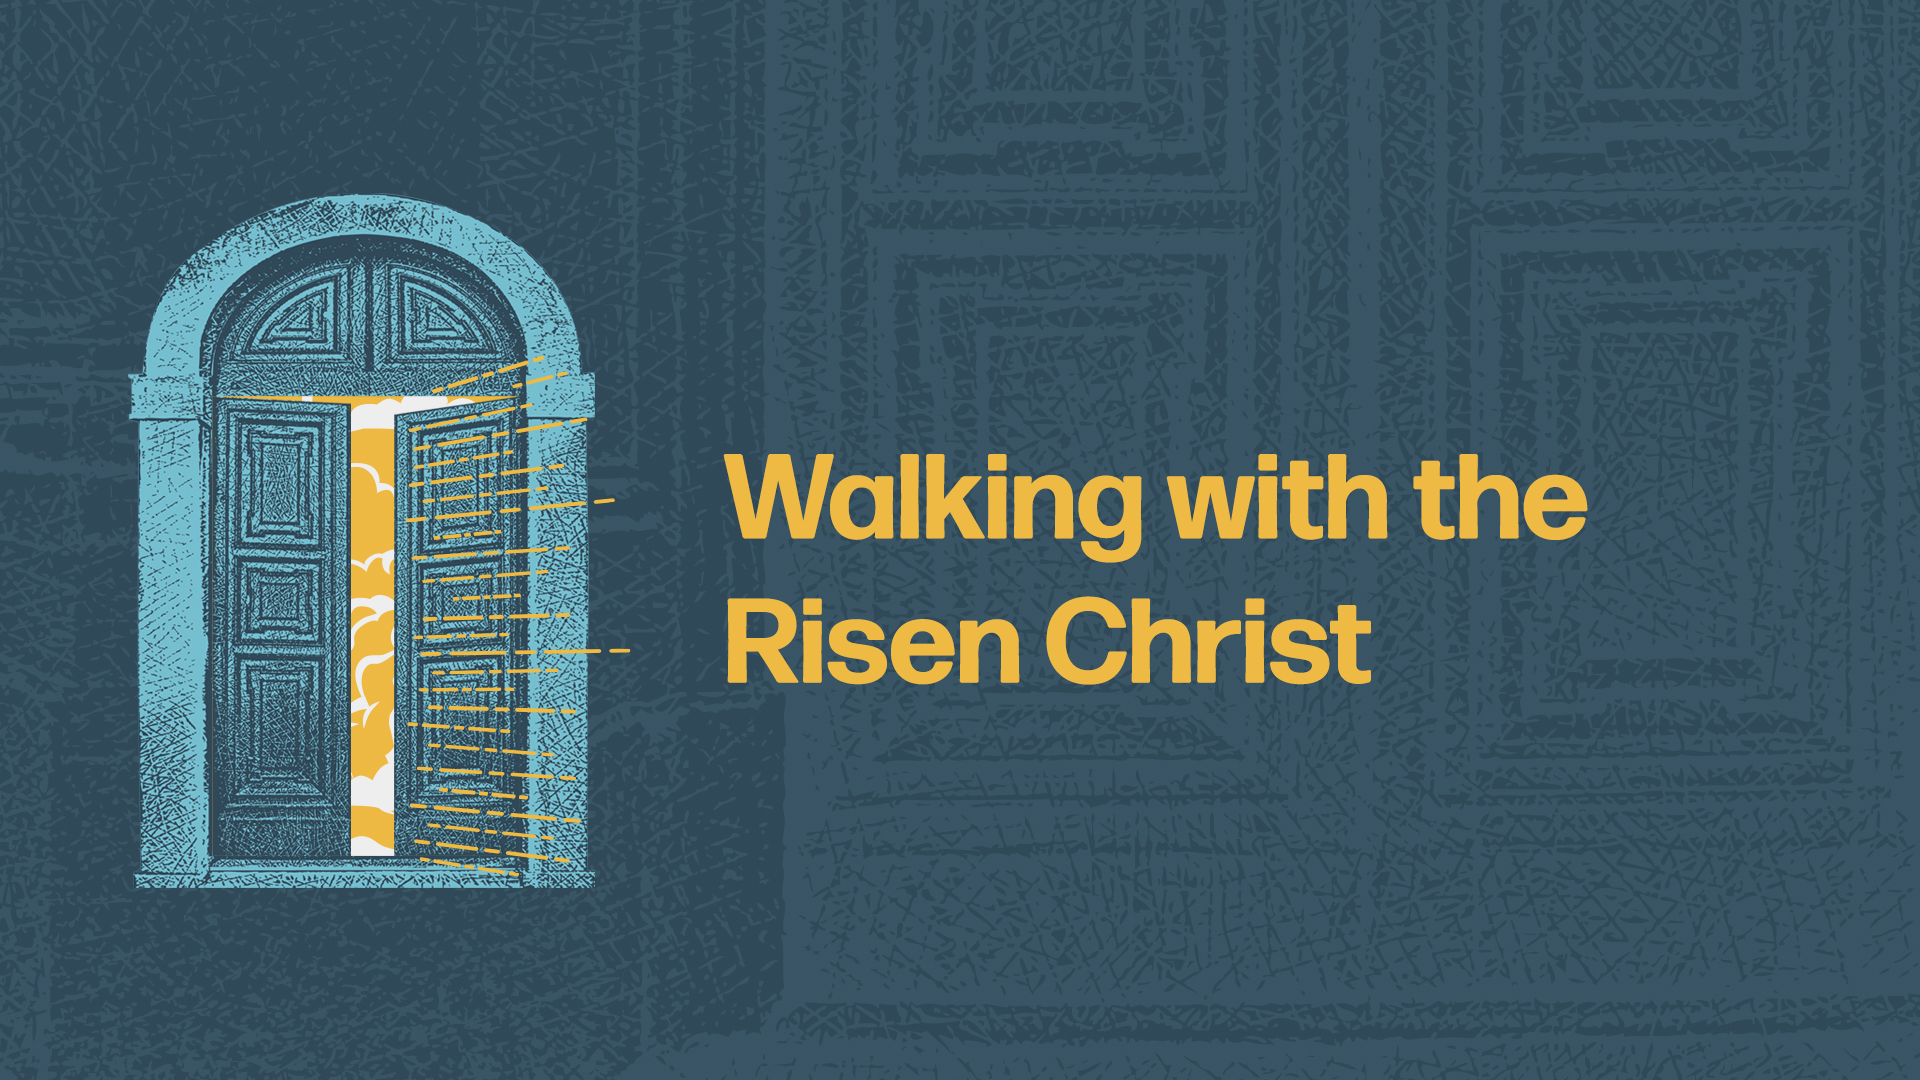 Walking with the Risen Christ